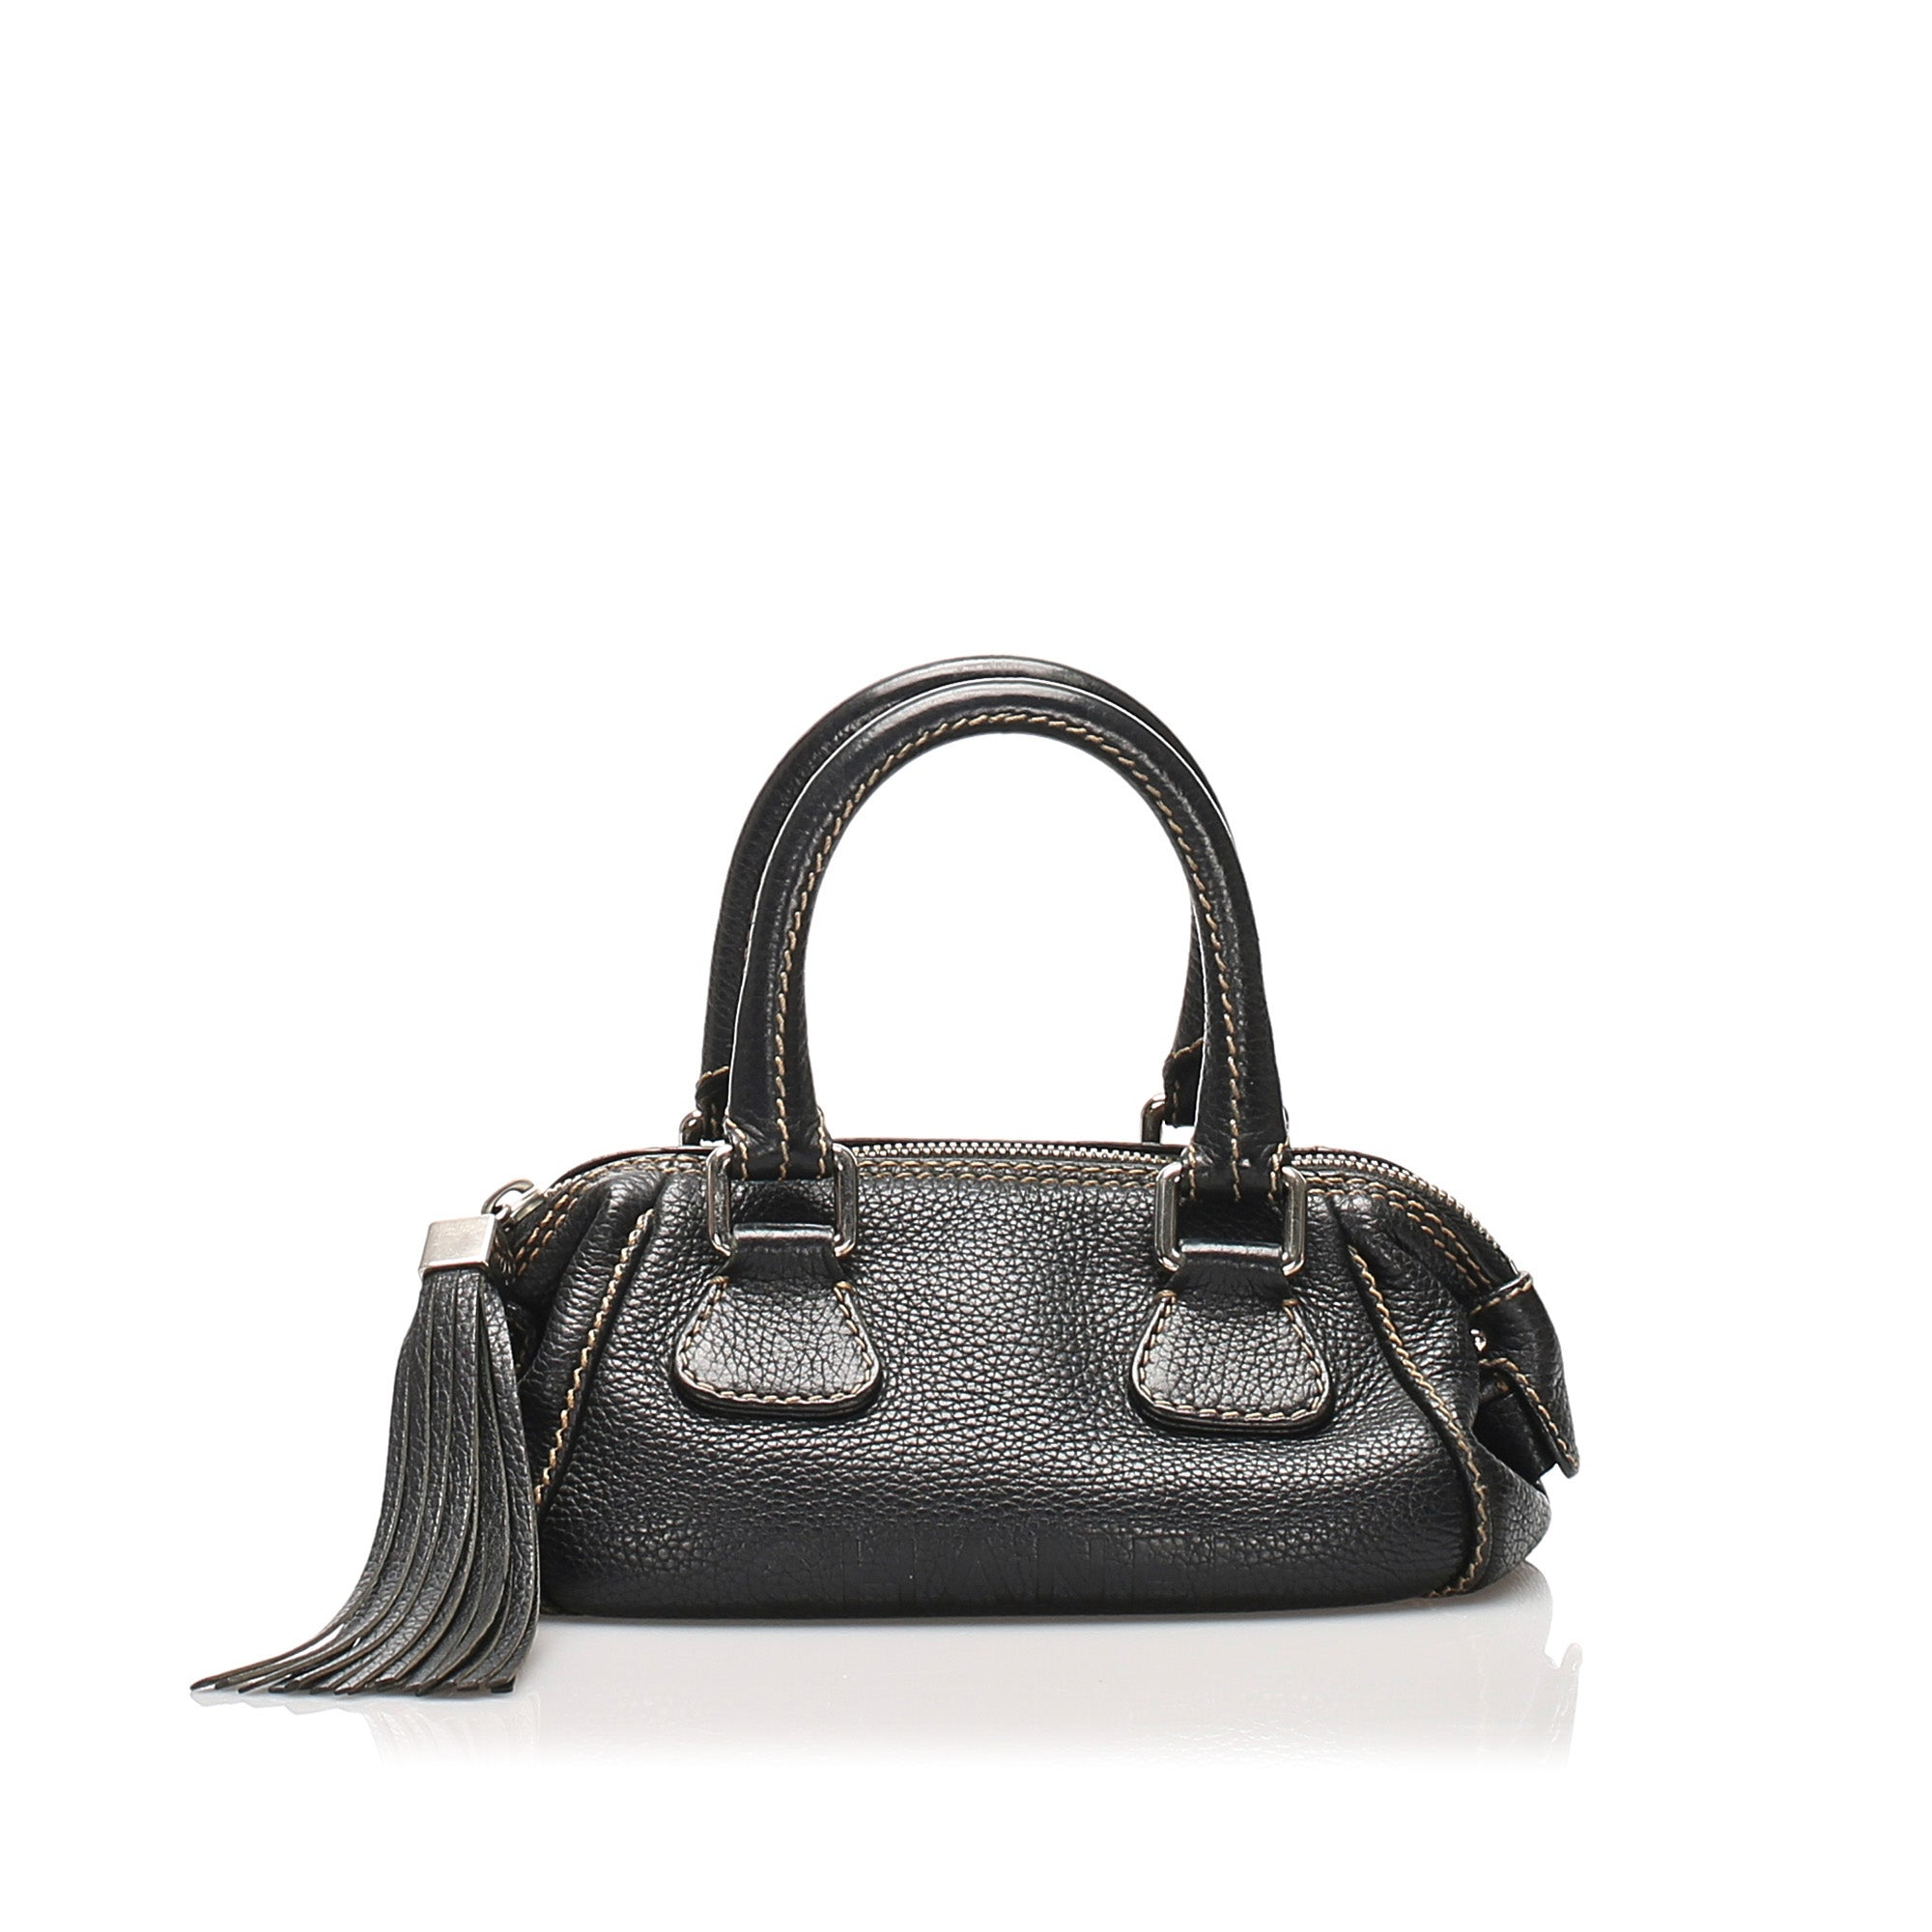 Chanel Black Mini Caviar Leather Handbag